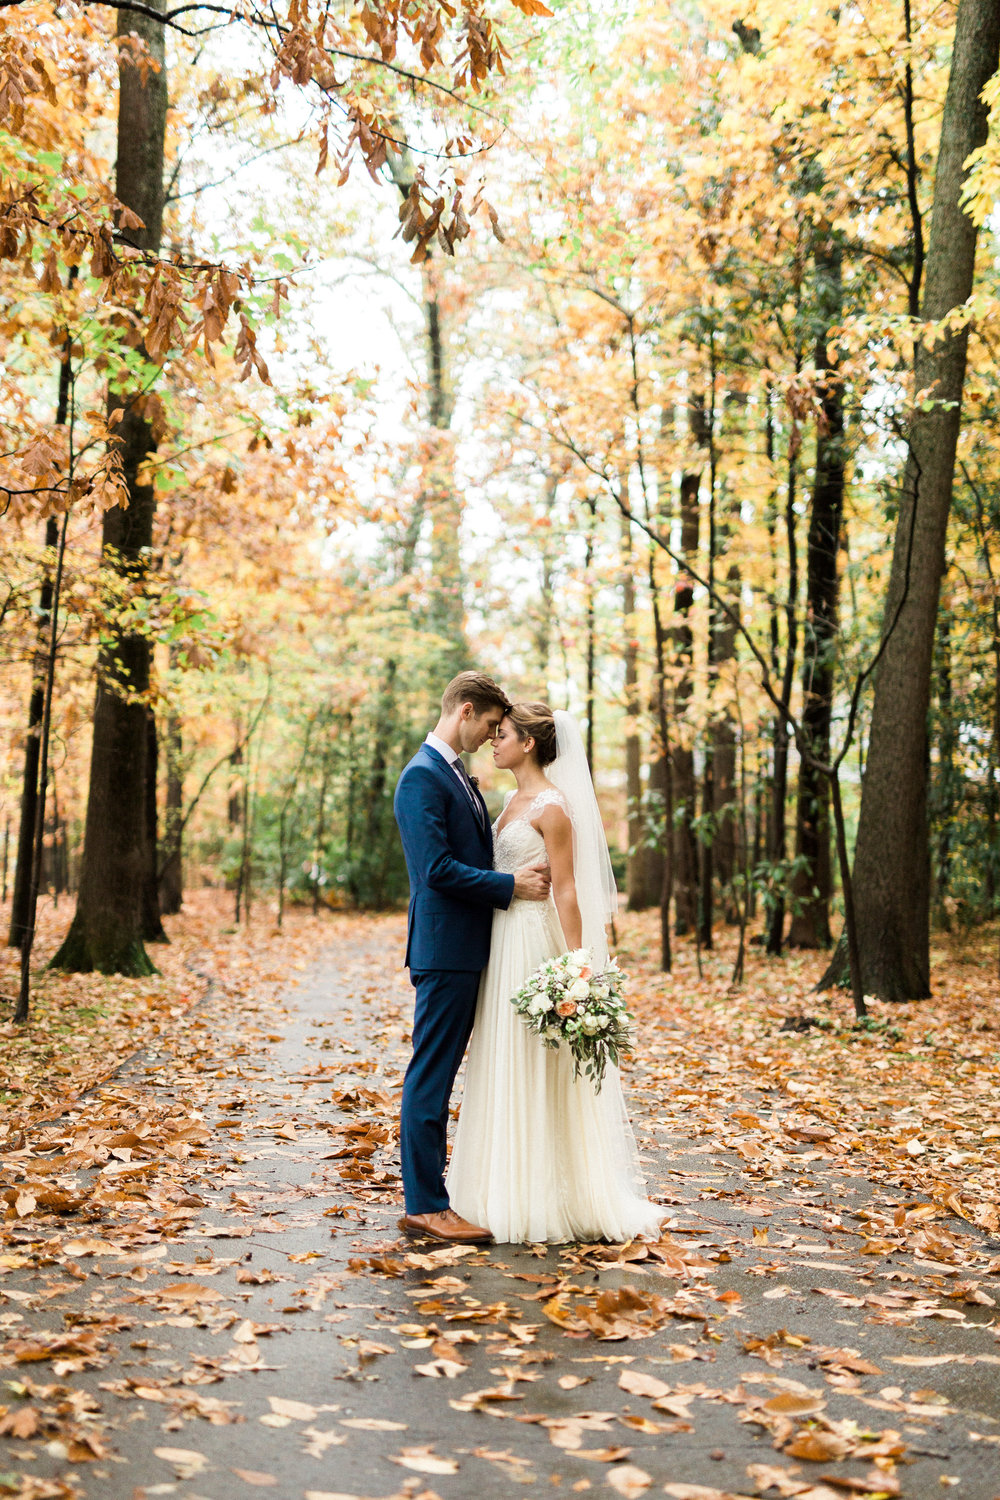 Lucy + Josh | Brian Flint Photography